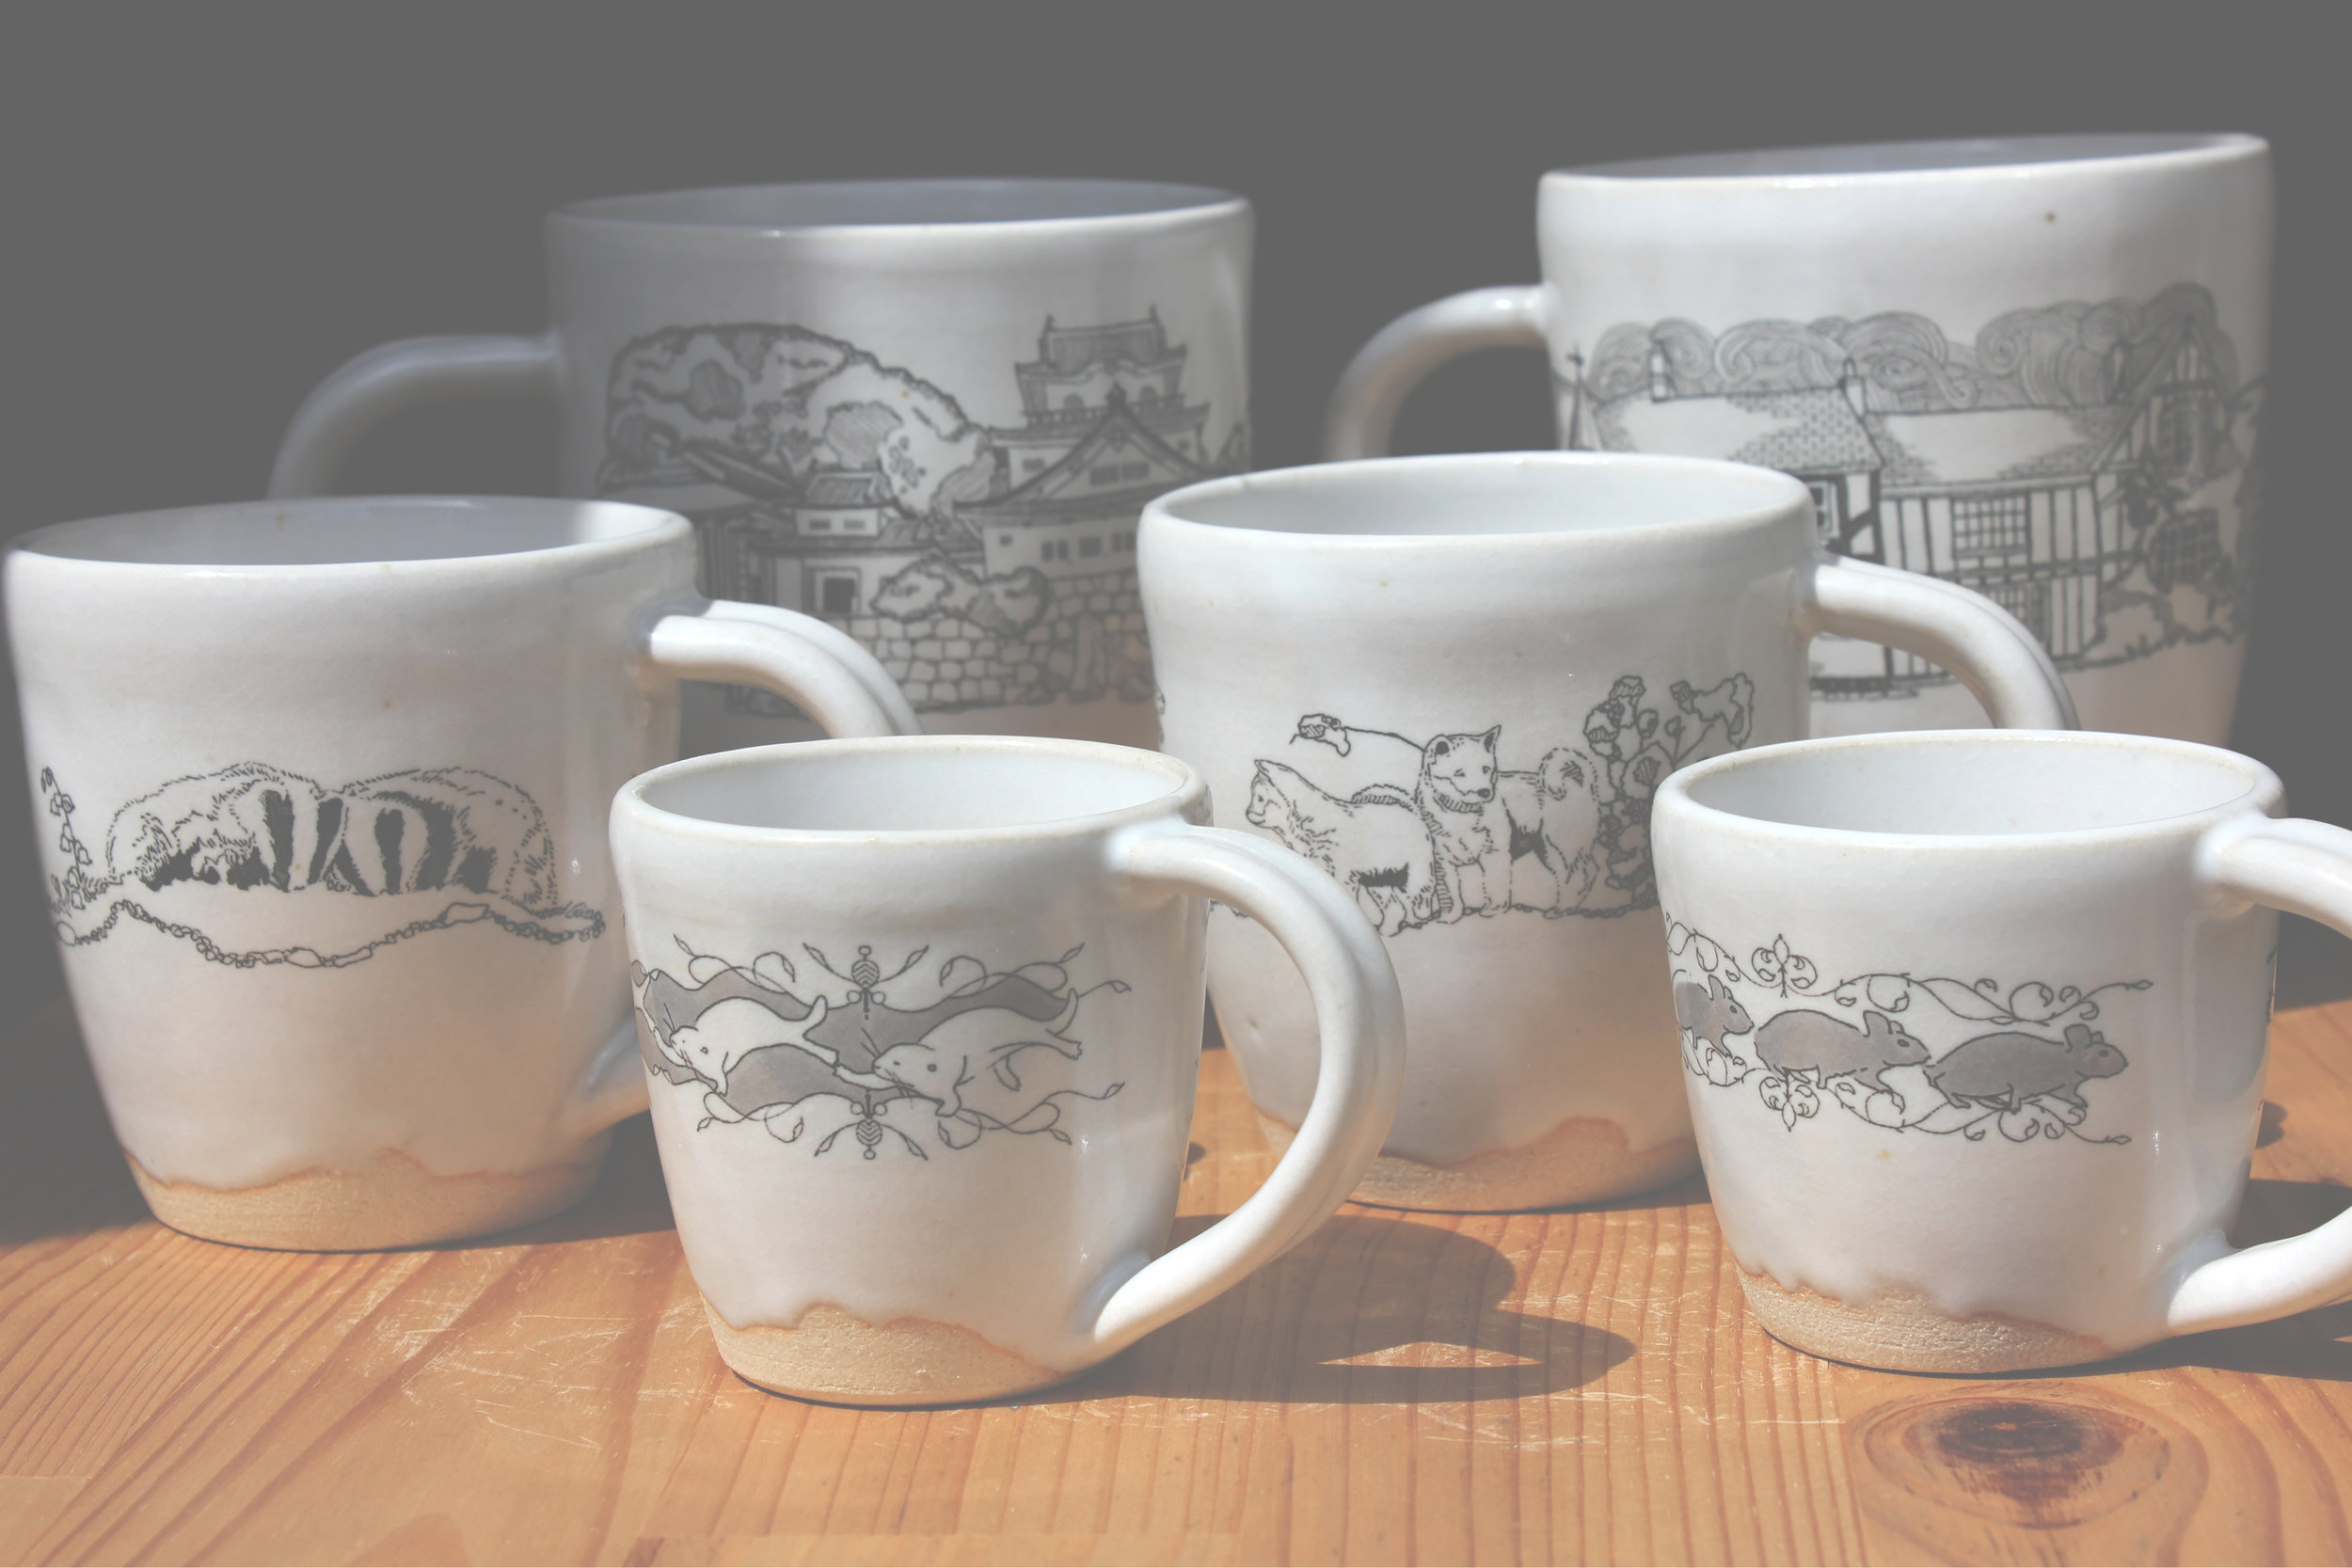 Cups Collection - Exclusive designs by Jack Brutus Penny & Miho HanyuEmail Miho Hanyu at susieisus@gmail.com